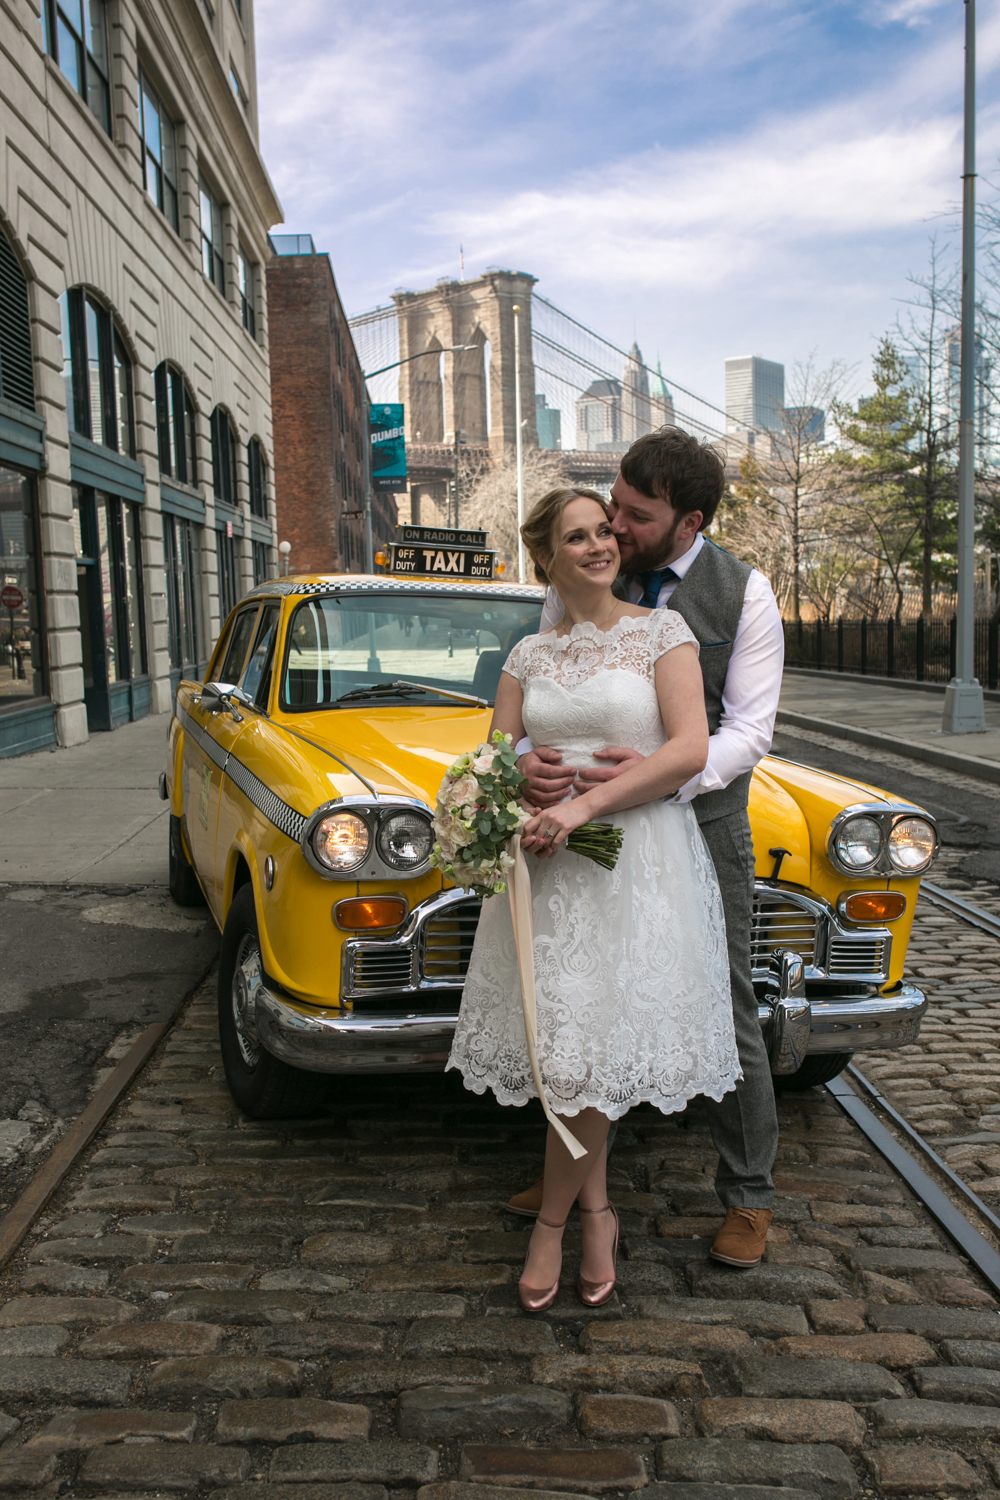 Vintage taxi wedding photo